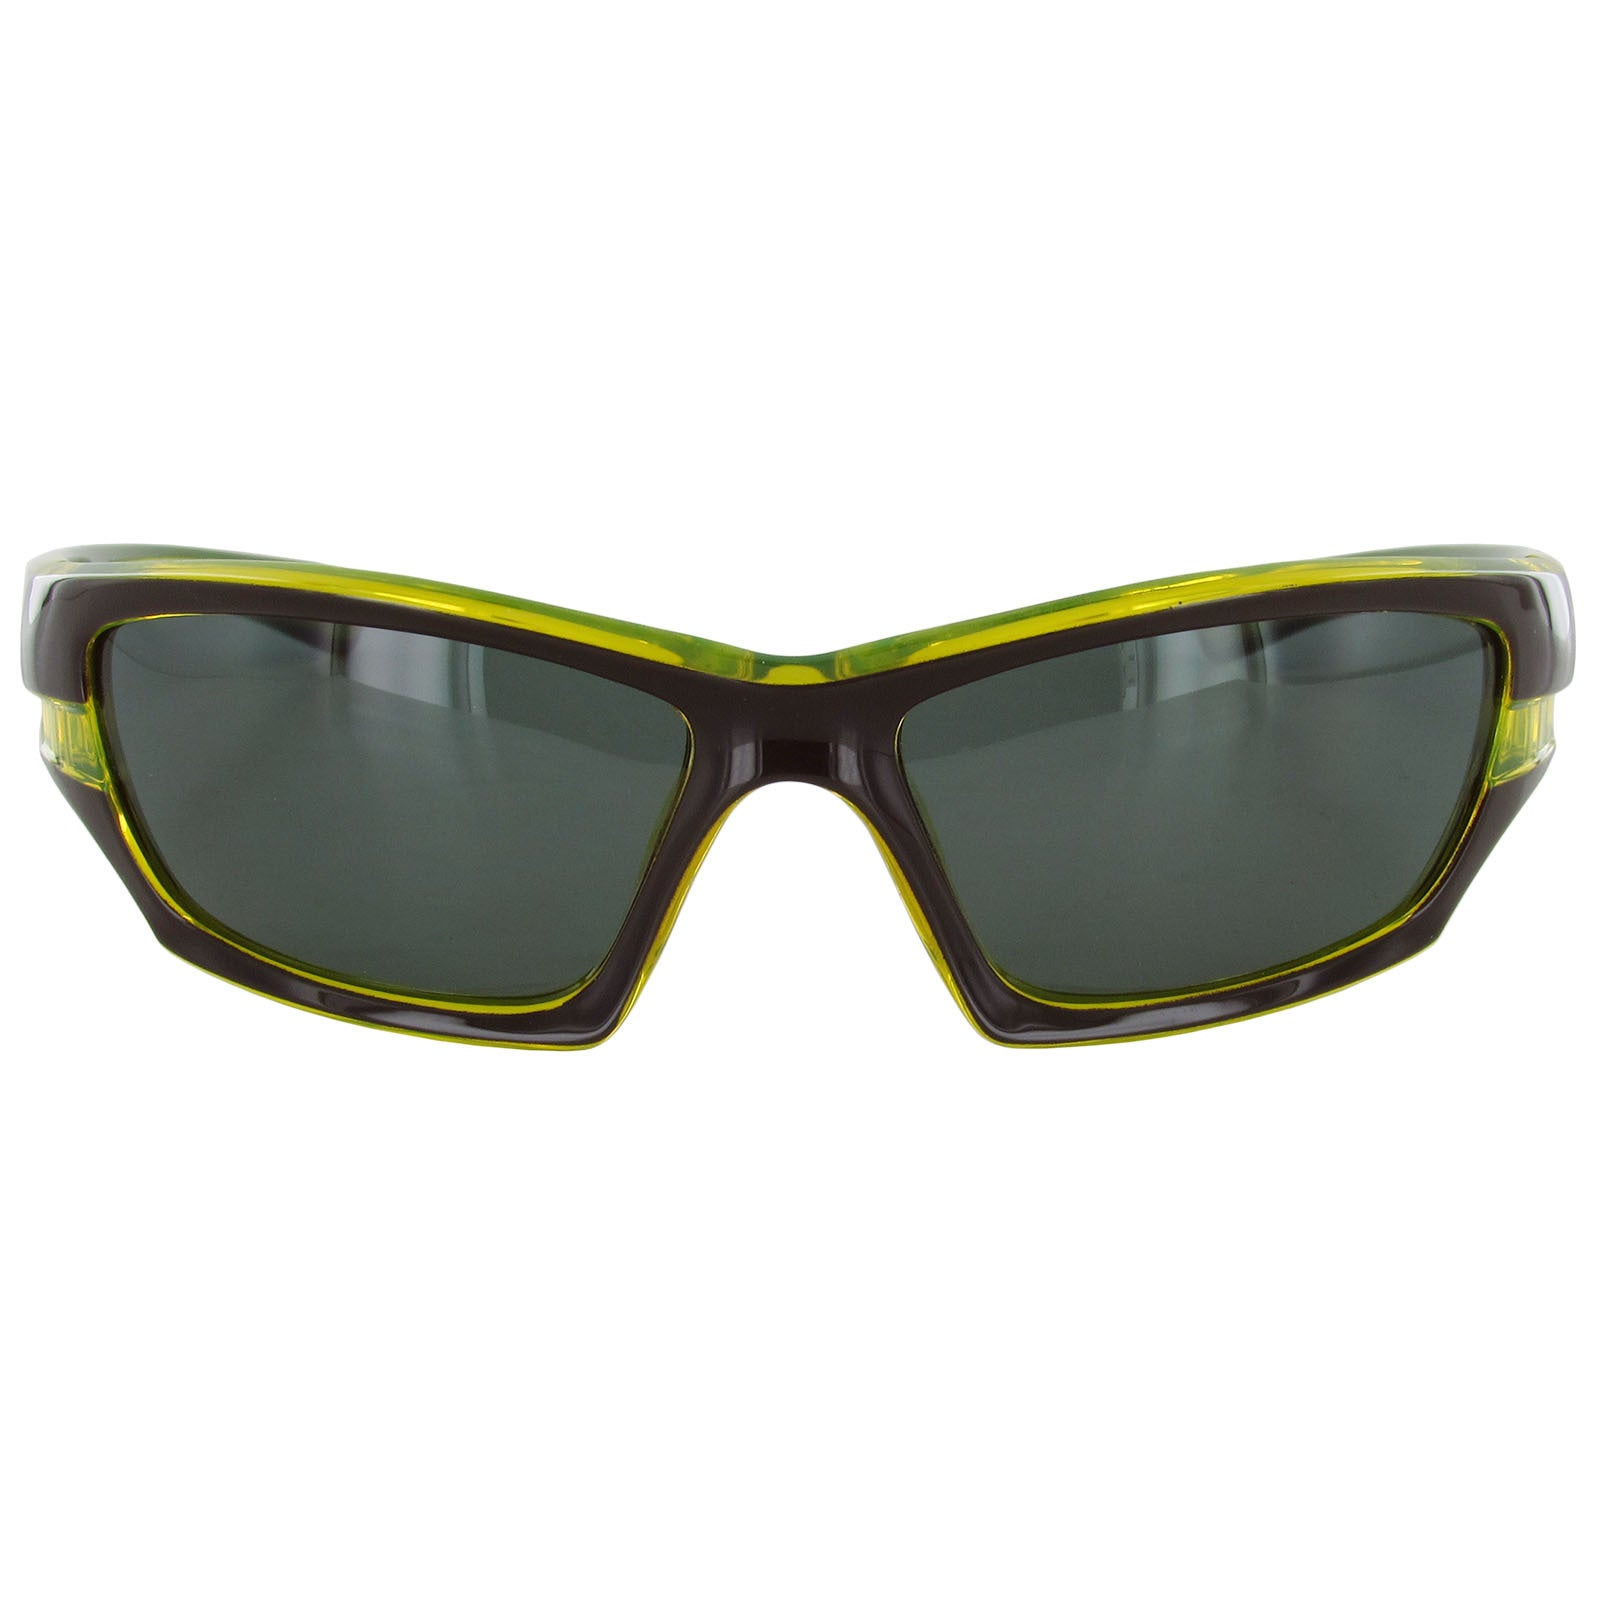 Fila Sunglasses Uv Protection « Heritage Malta